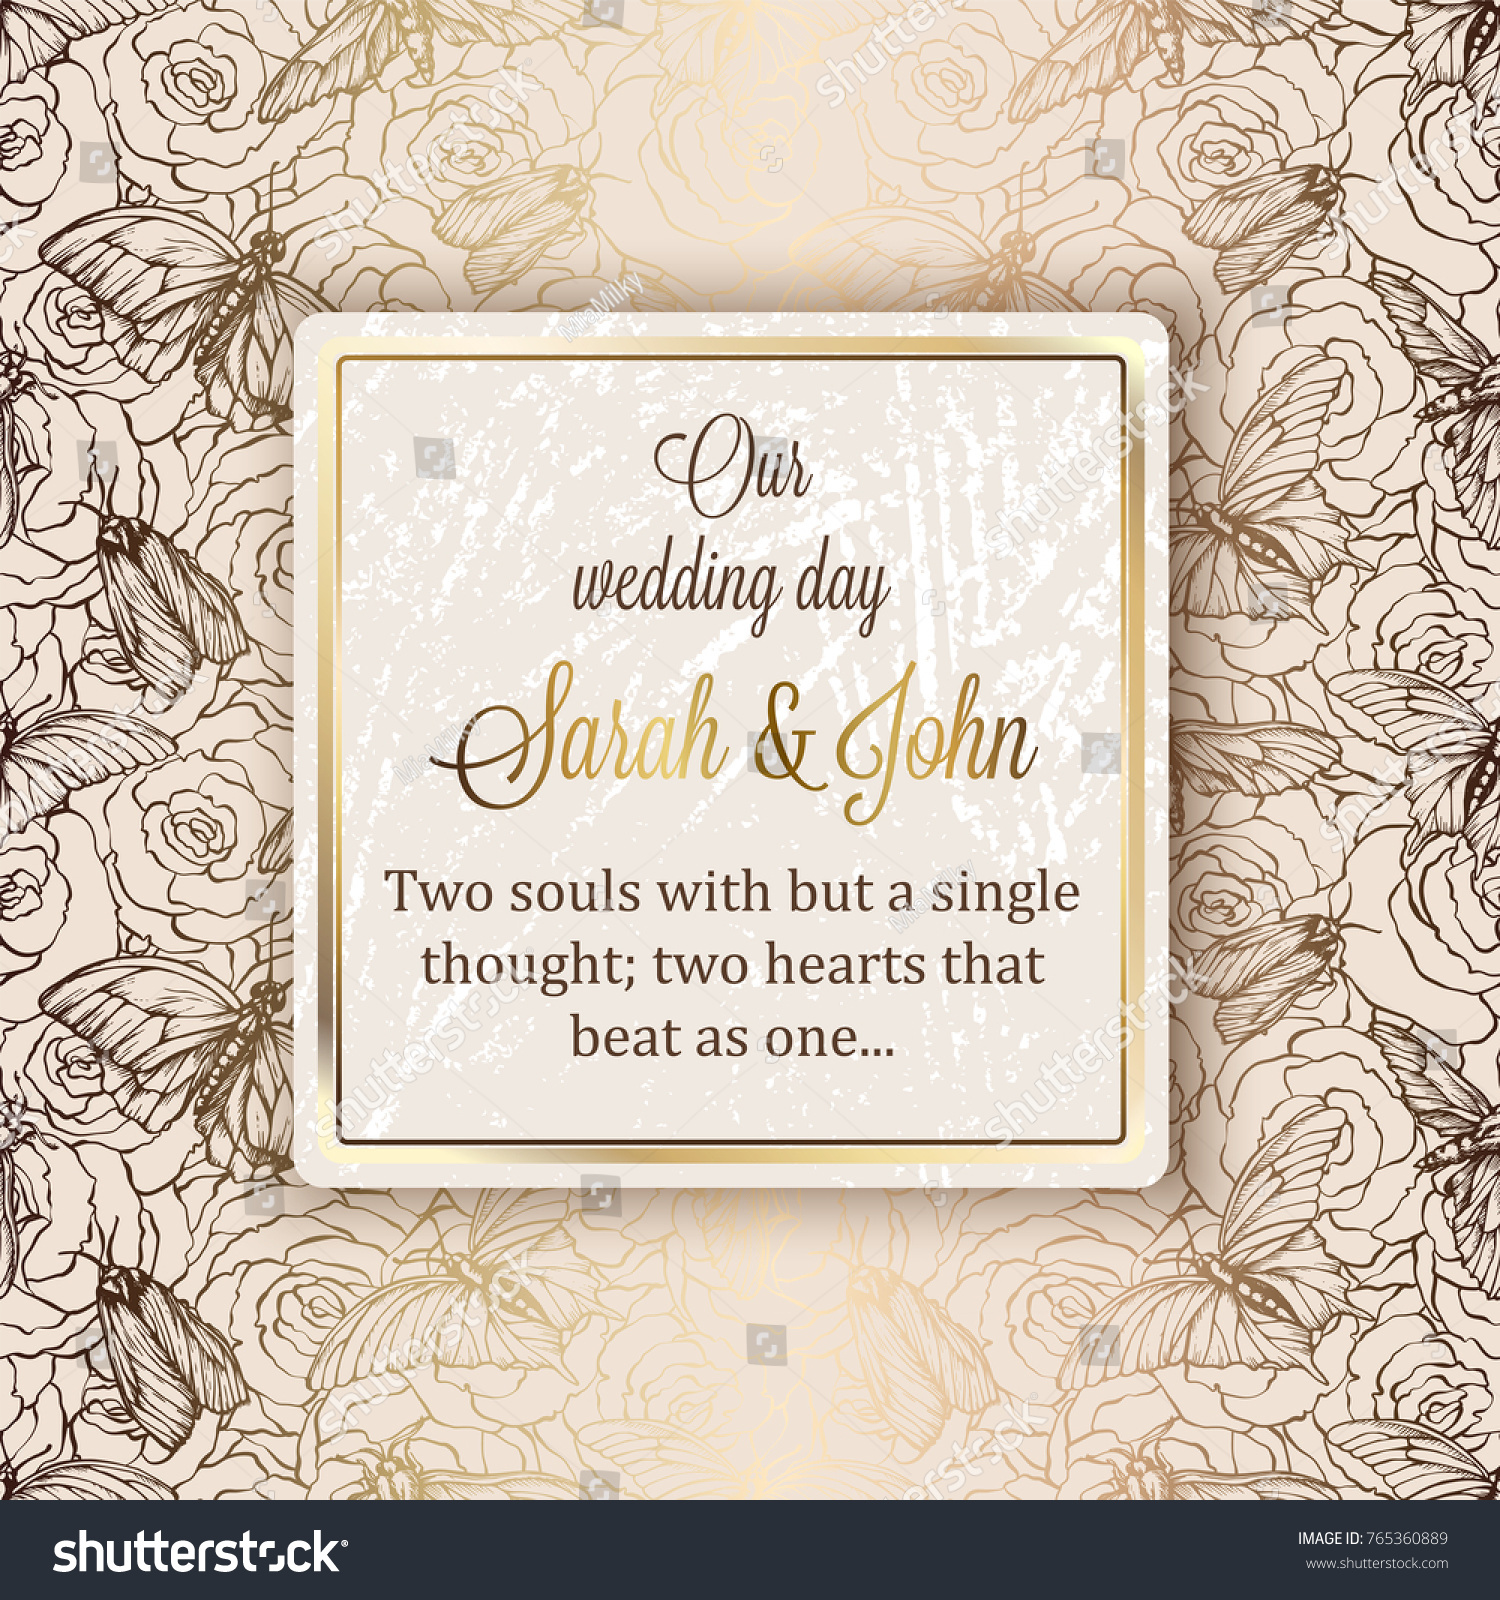 Intricate baroque luxury wedding invitation card stock vector intricate baroque luxury wedding invitation card rich gold decor on beige background with frame and monicamarmolfo Gallery